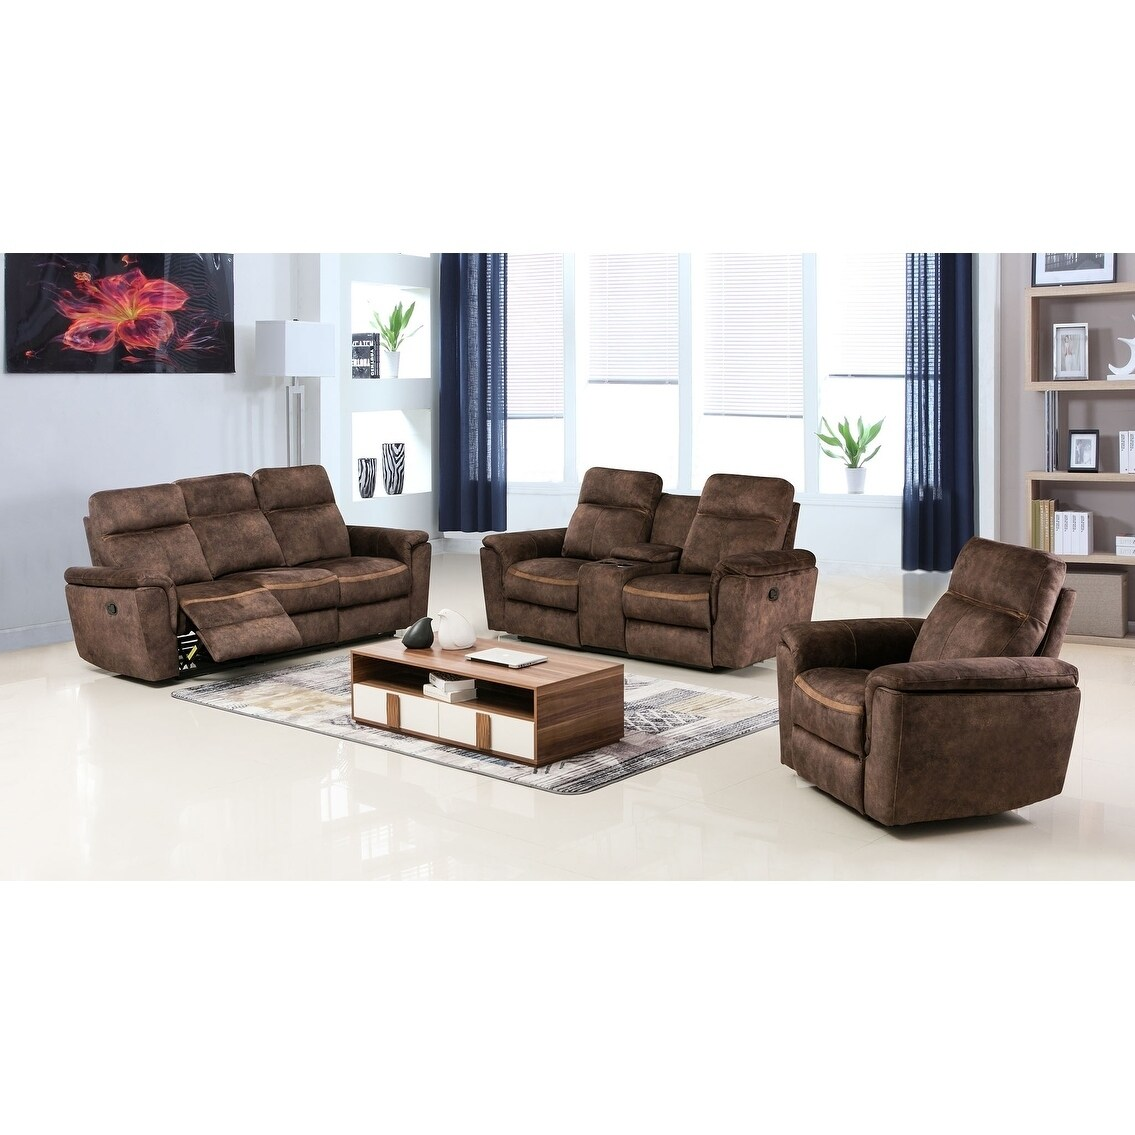 Shop GU Industries Palomino Fabric Upholstered 3-Piece Living Room ...